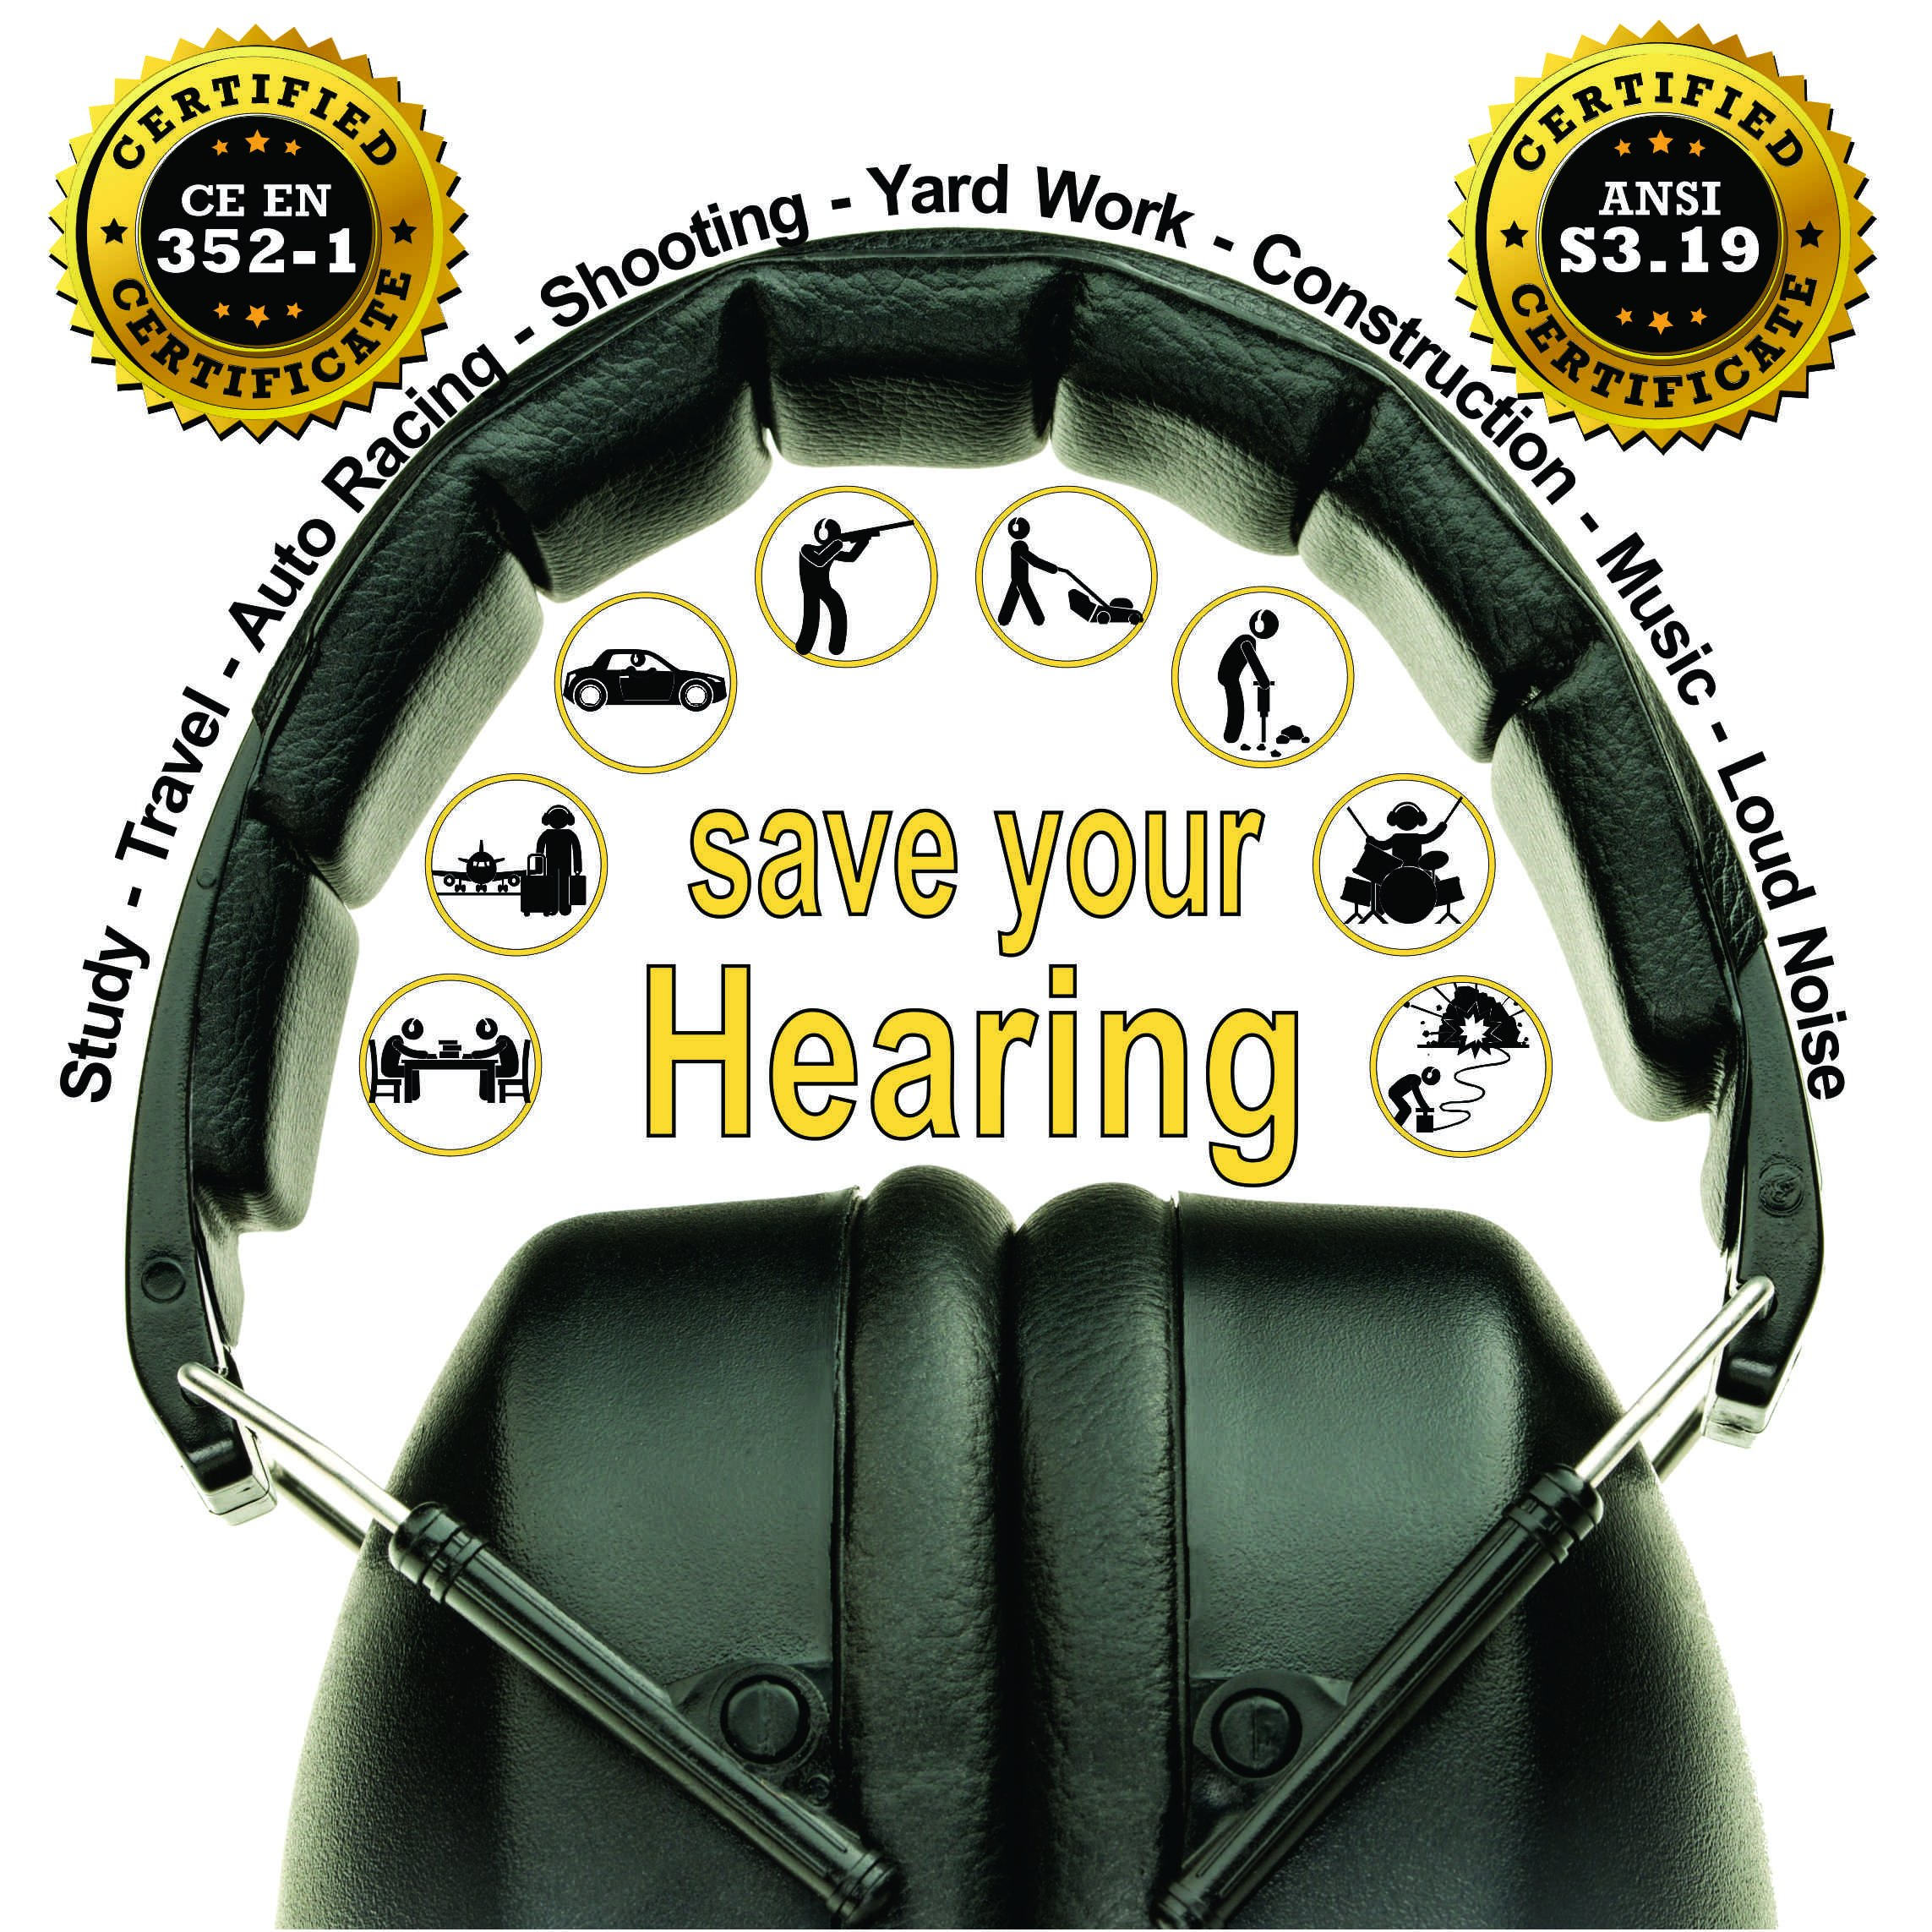 ClearArmor 141001 Shooters Hearing Protection Safety Ear Muffs Folding-Padded Head Band Ear Cups, Black by ClearArmor (Image #4)